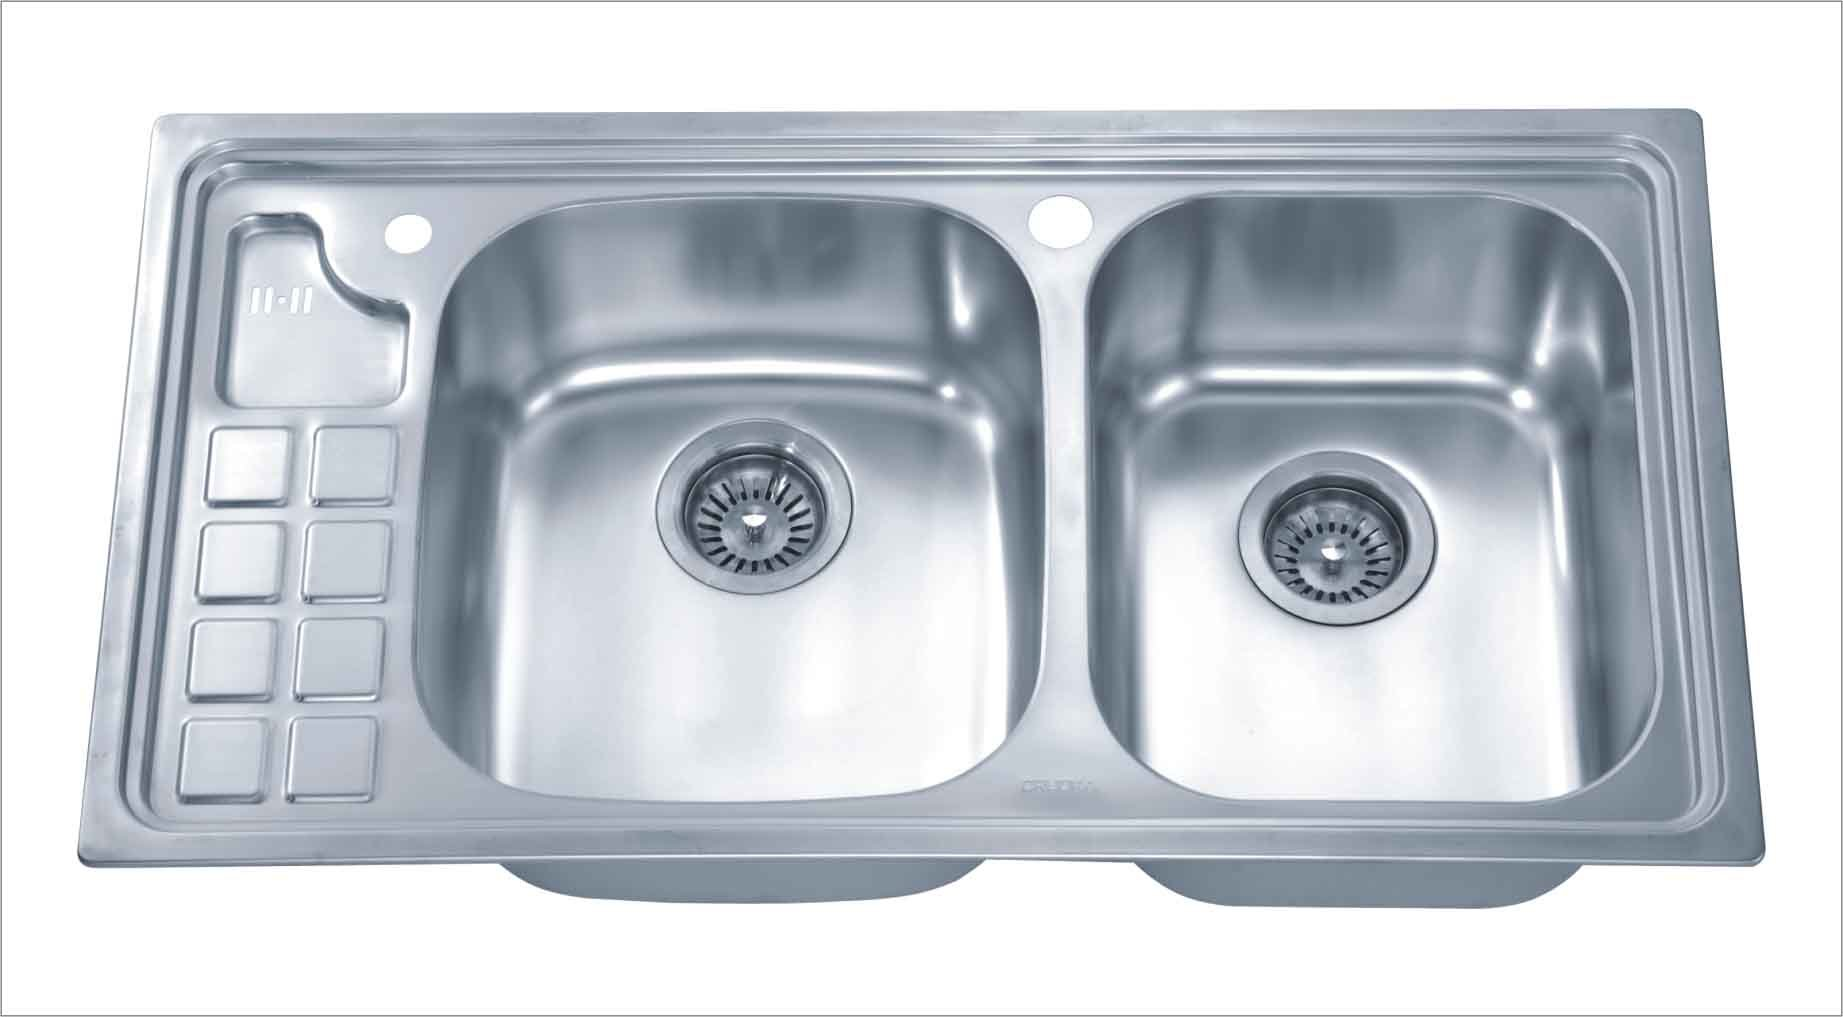 ... Steel Kitchen Sink (2873) - China Kitchen Sink, Stainless Steel Sink